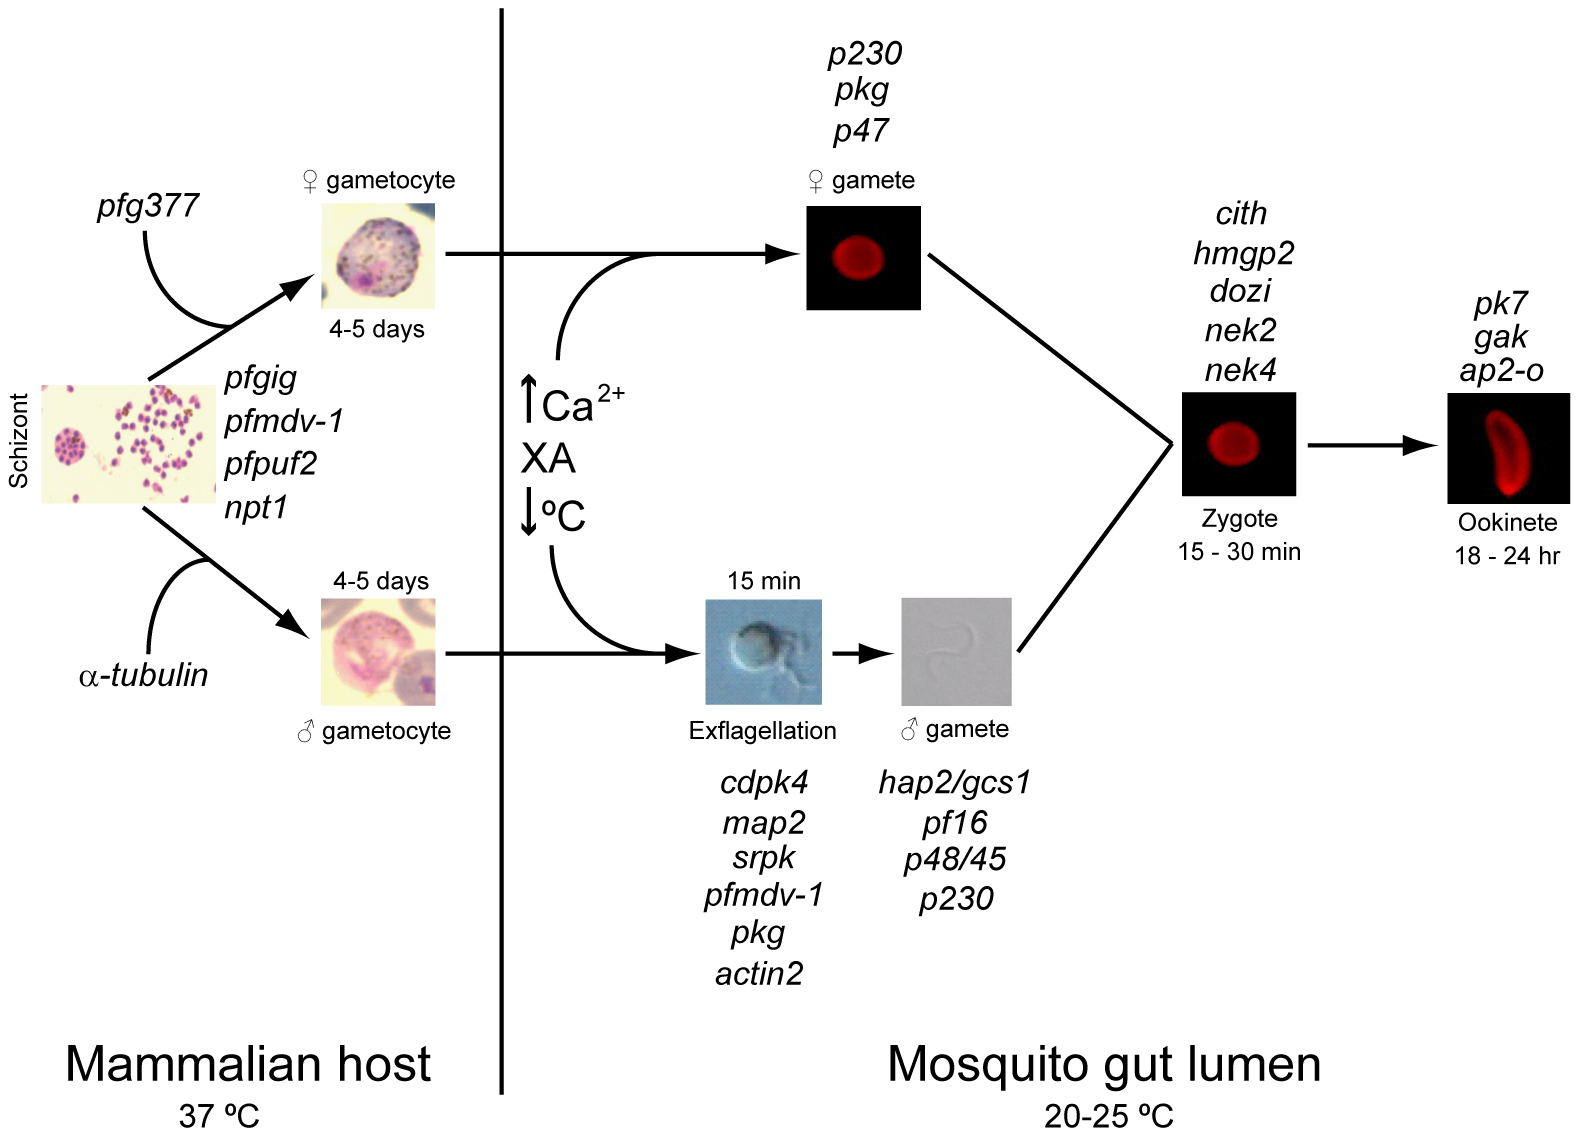 Regulators of gametocytogenesis and the sexual stage of the life cycle.